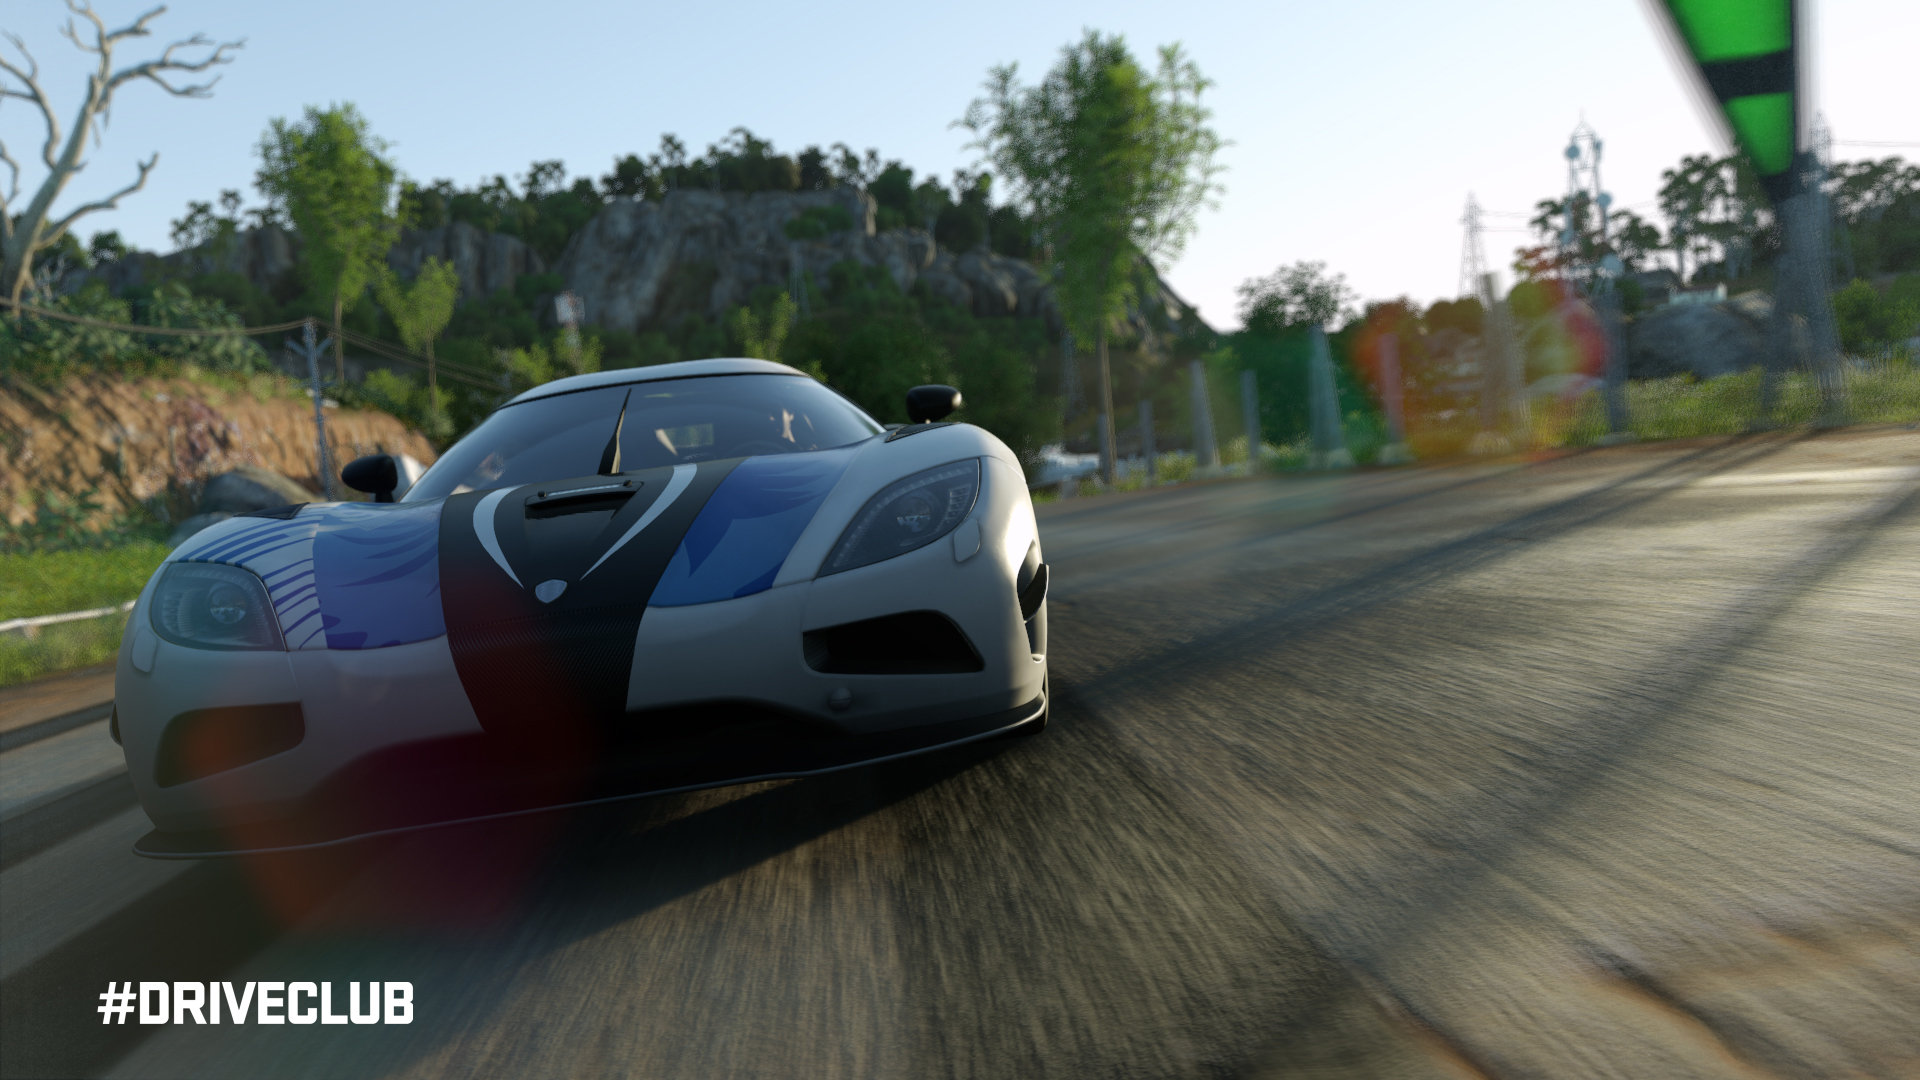 driveclub-screen-01-ps4-us-26aug14?$Medi